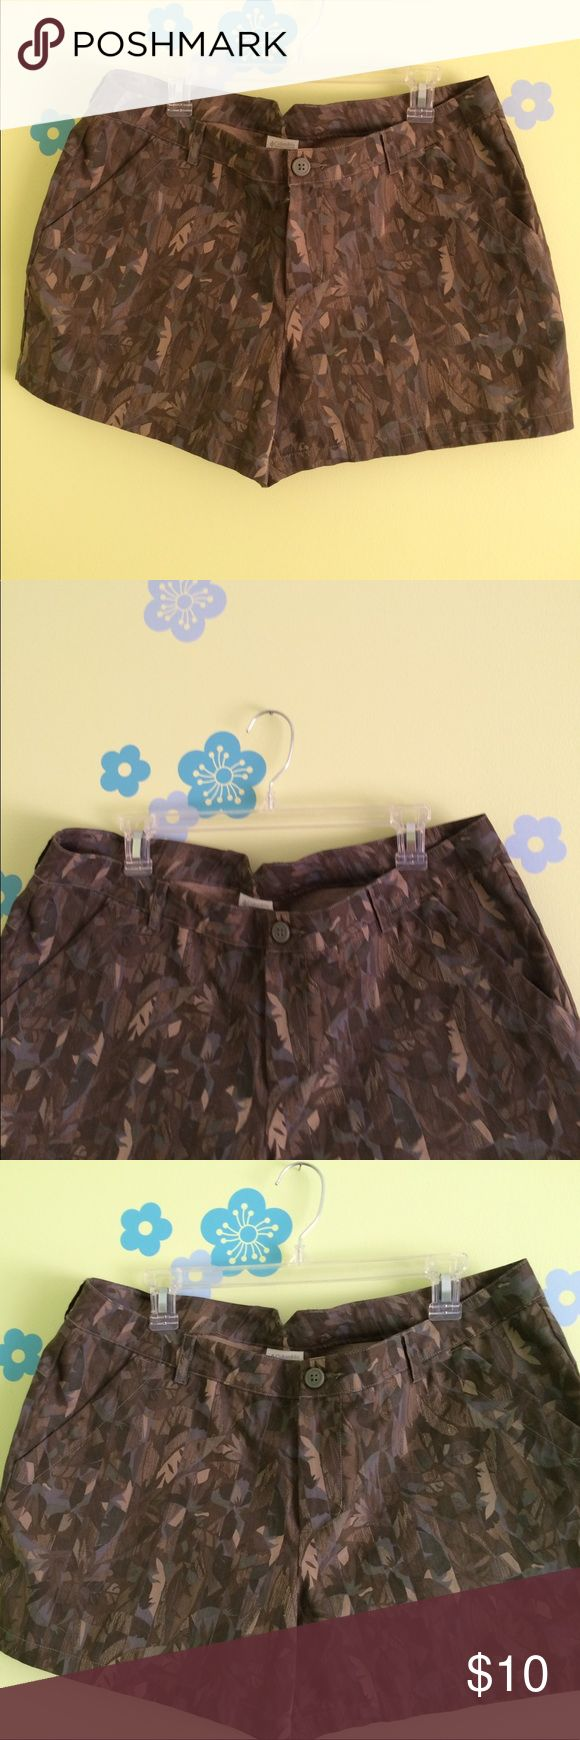 Columbia sportswear camouflage shorts Nwot, Columbia sportswear shorts. Size 16. Colors- brown, tan , gray. Four pockets. So cute!! Columbia Shorts